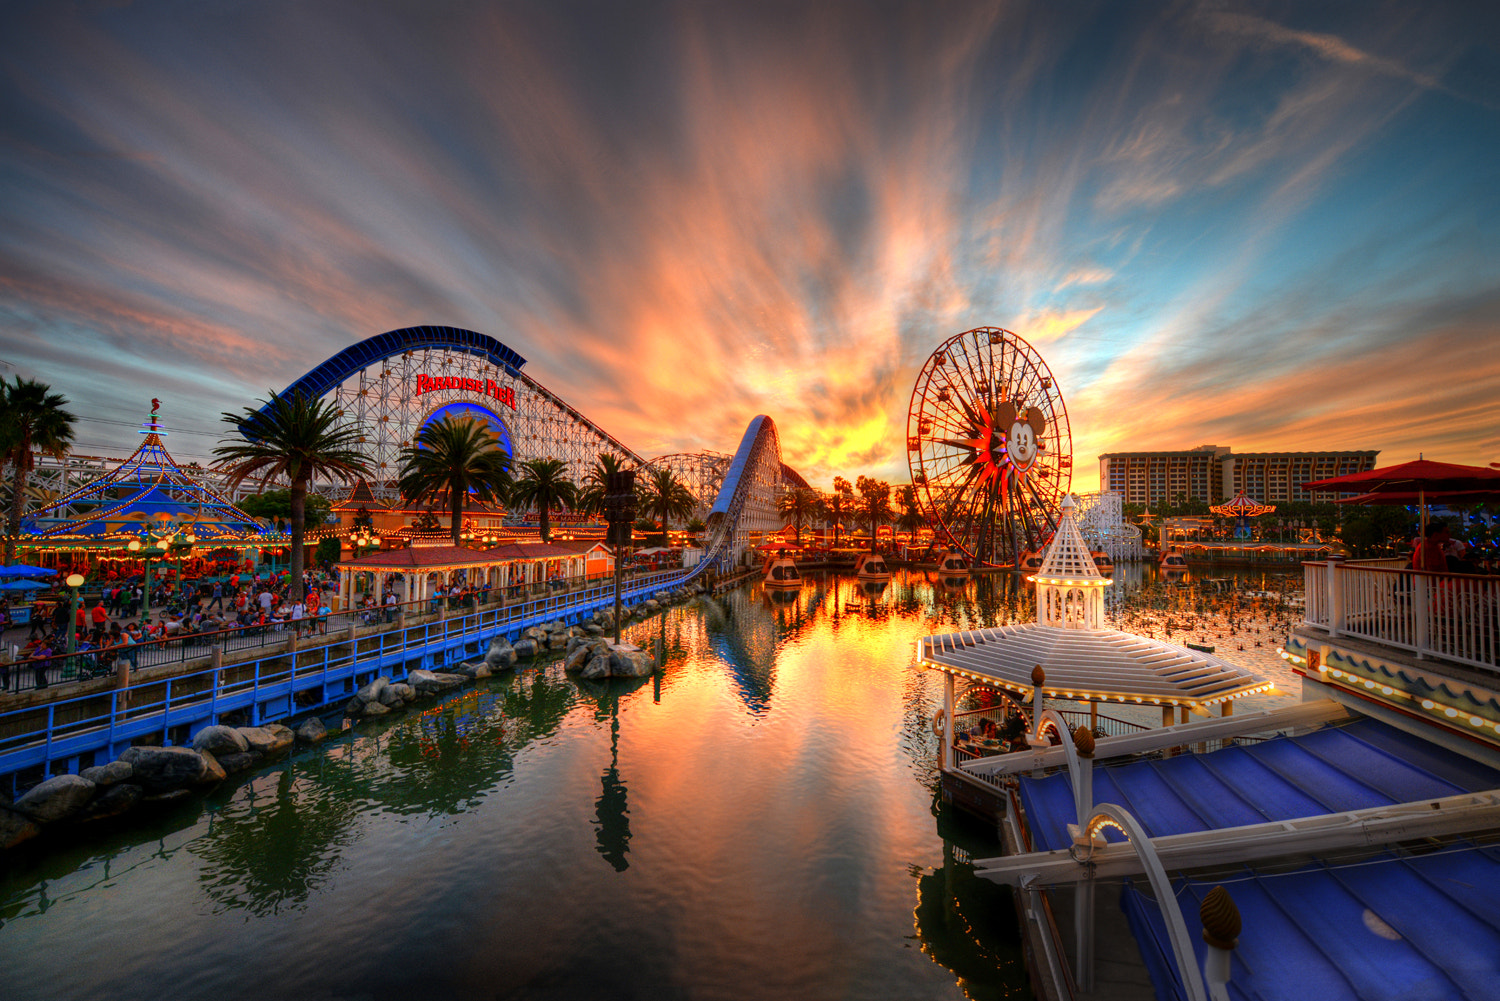 Photograph Paradise Pier Inferno by William McIntosh on 500px